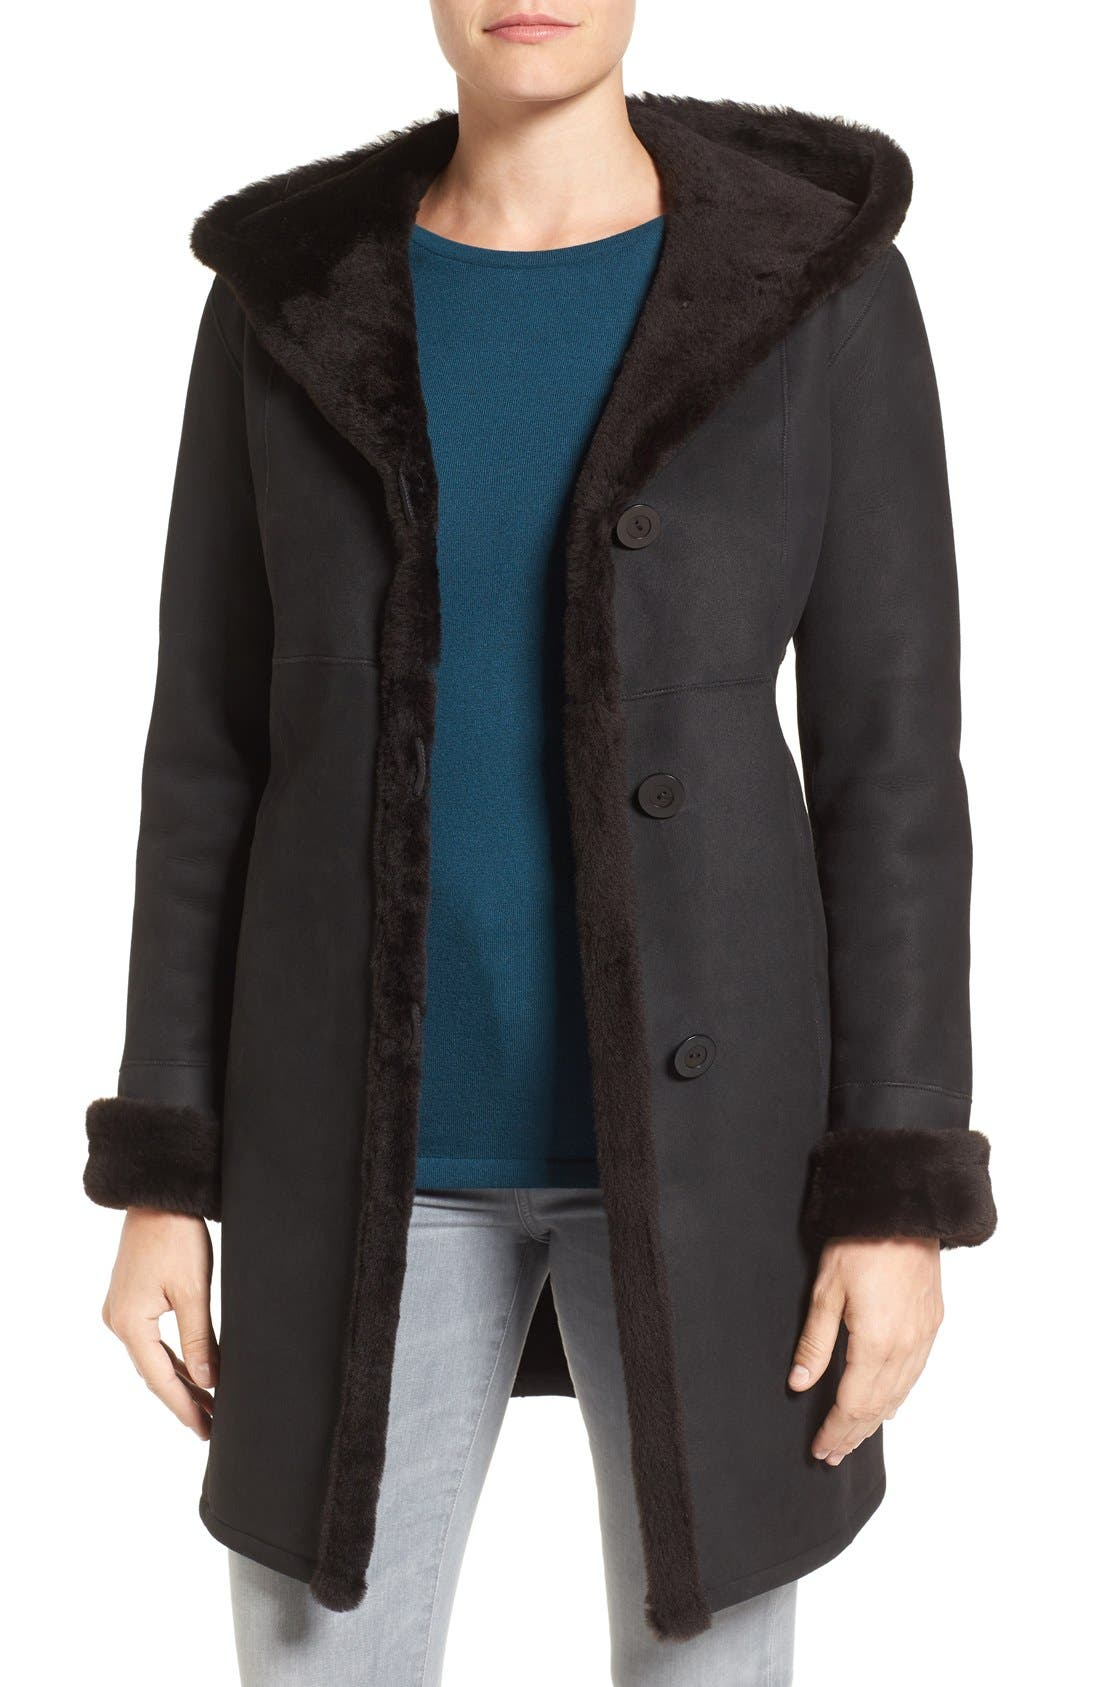 Alternate Image 1 Selected - Blue Duck Fitted Genuine Shearling Coat (Regular & Petite)